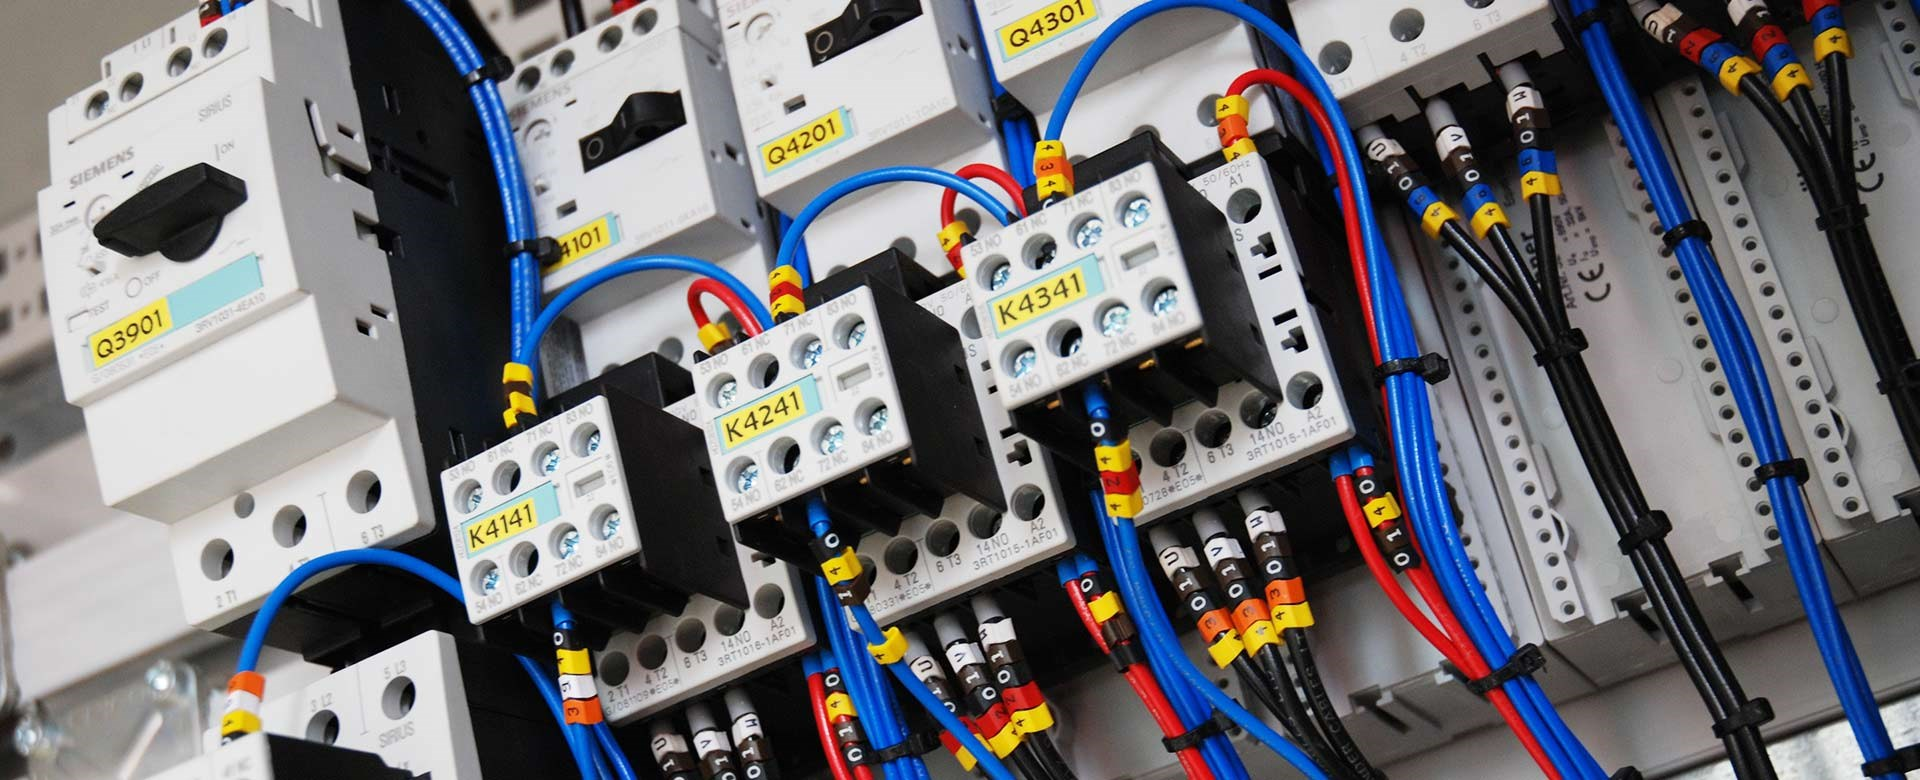 Nexdorf Electrical Control Engineering Industrial Training Circuits Design Manufacturing